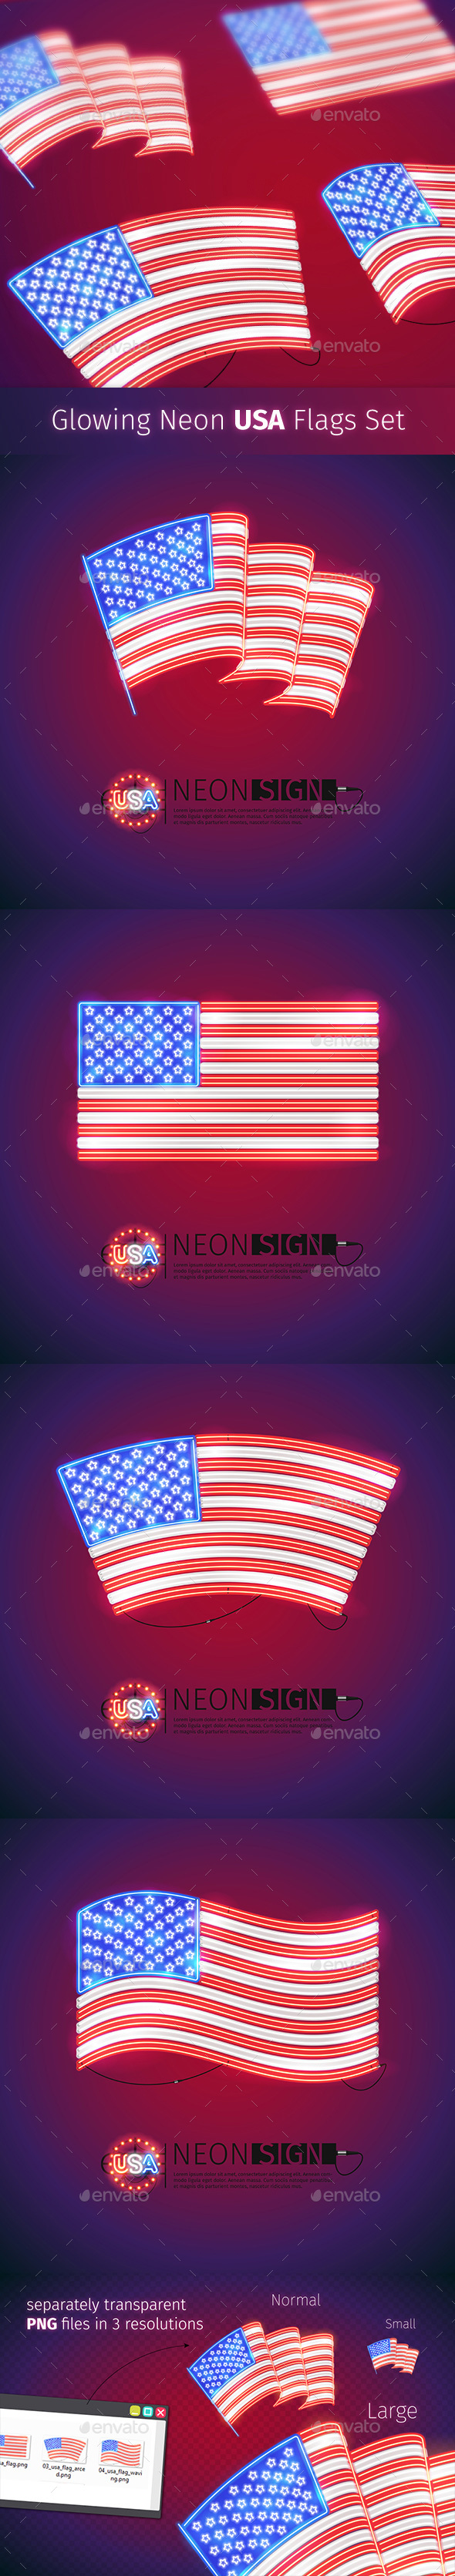 Glowing Neon USA Flags Set - Objects Vectors